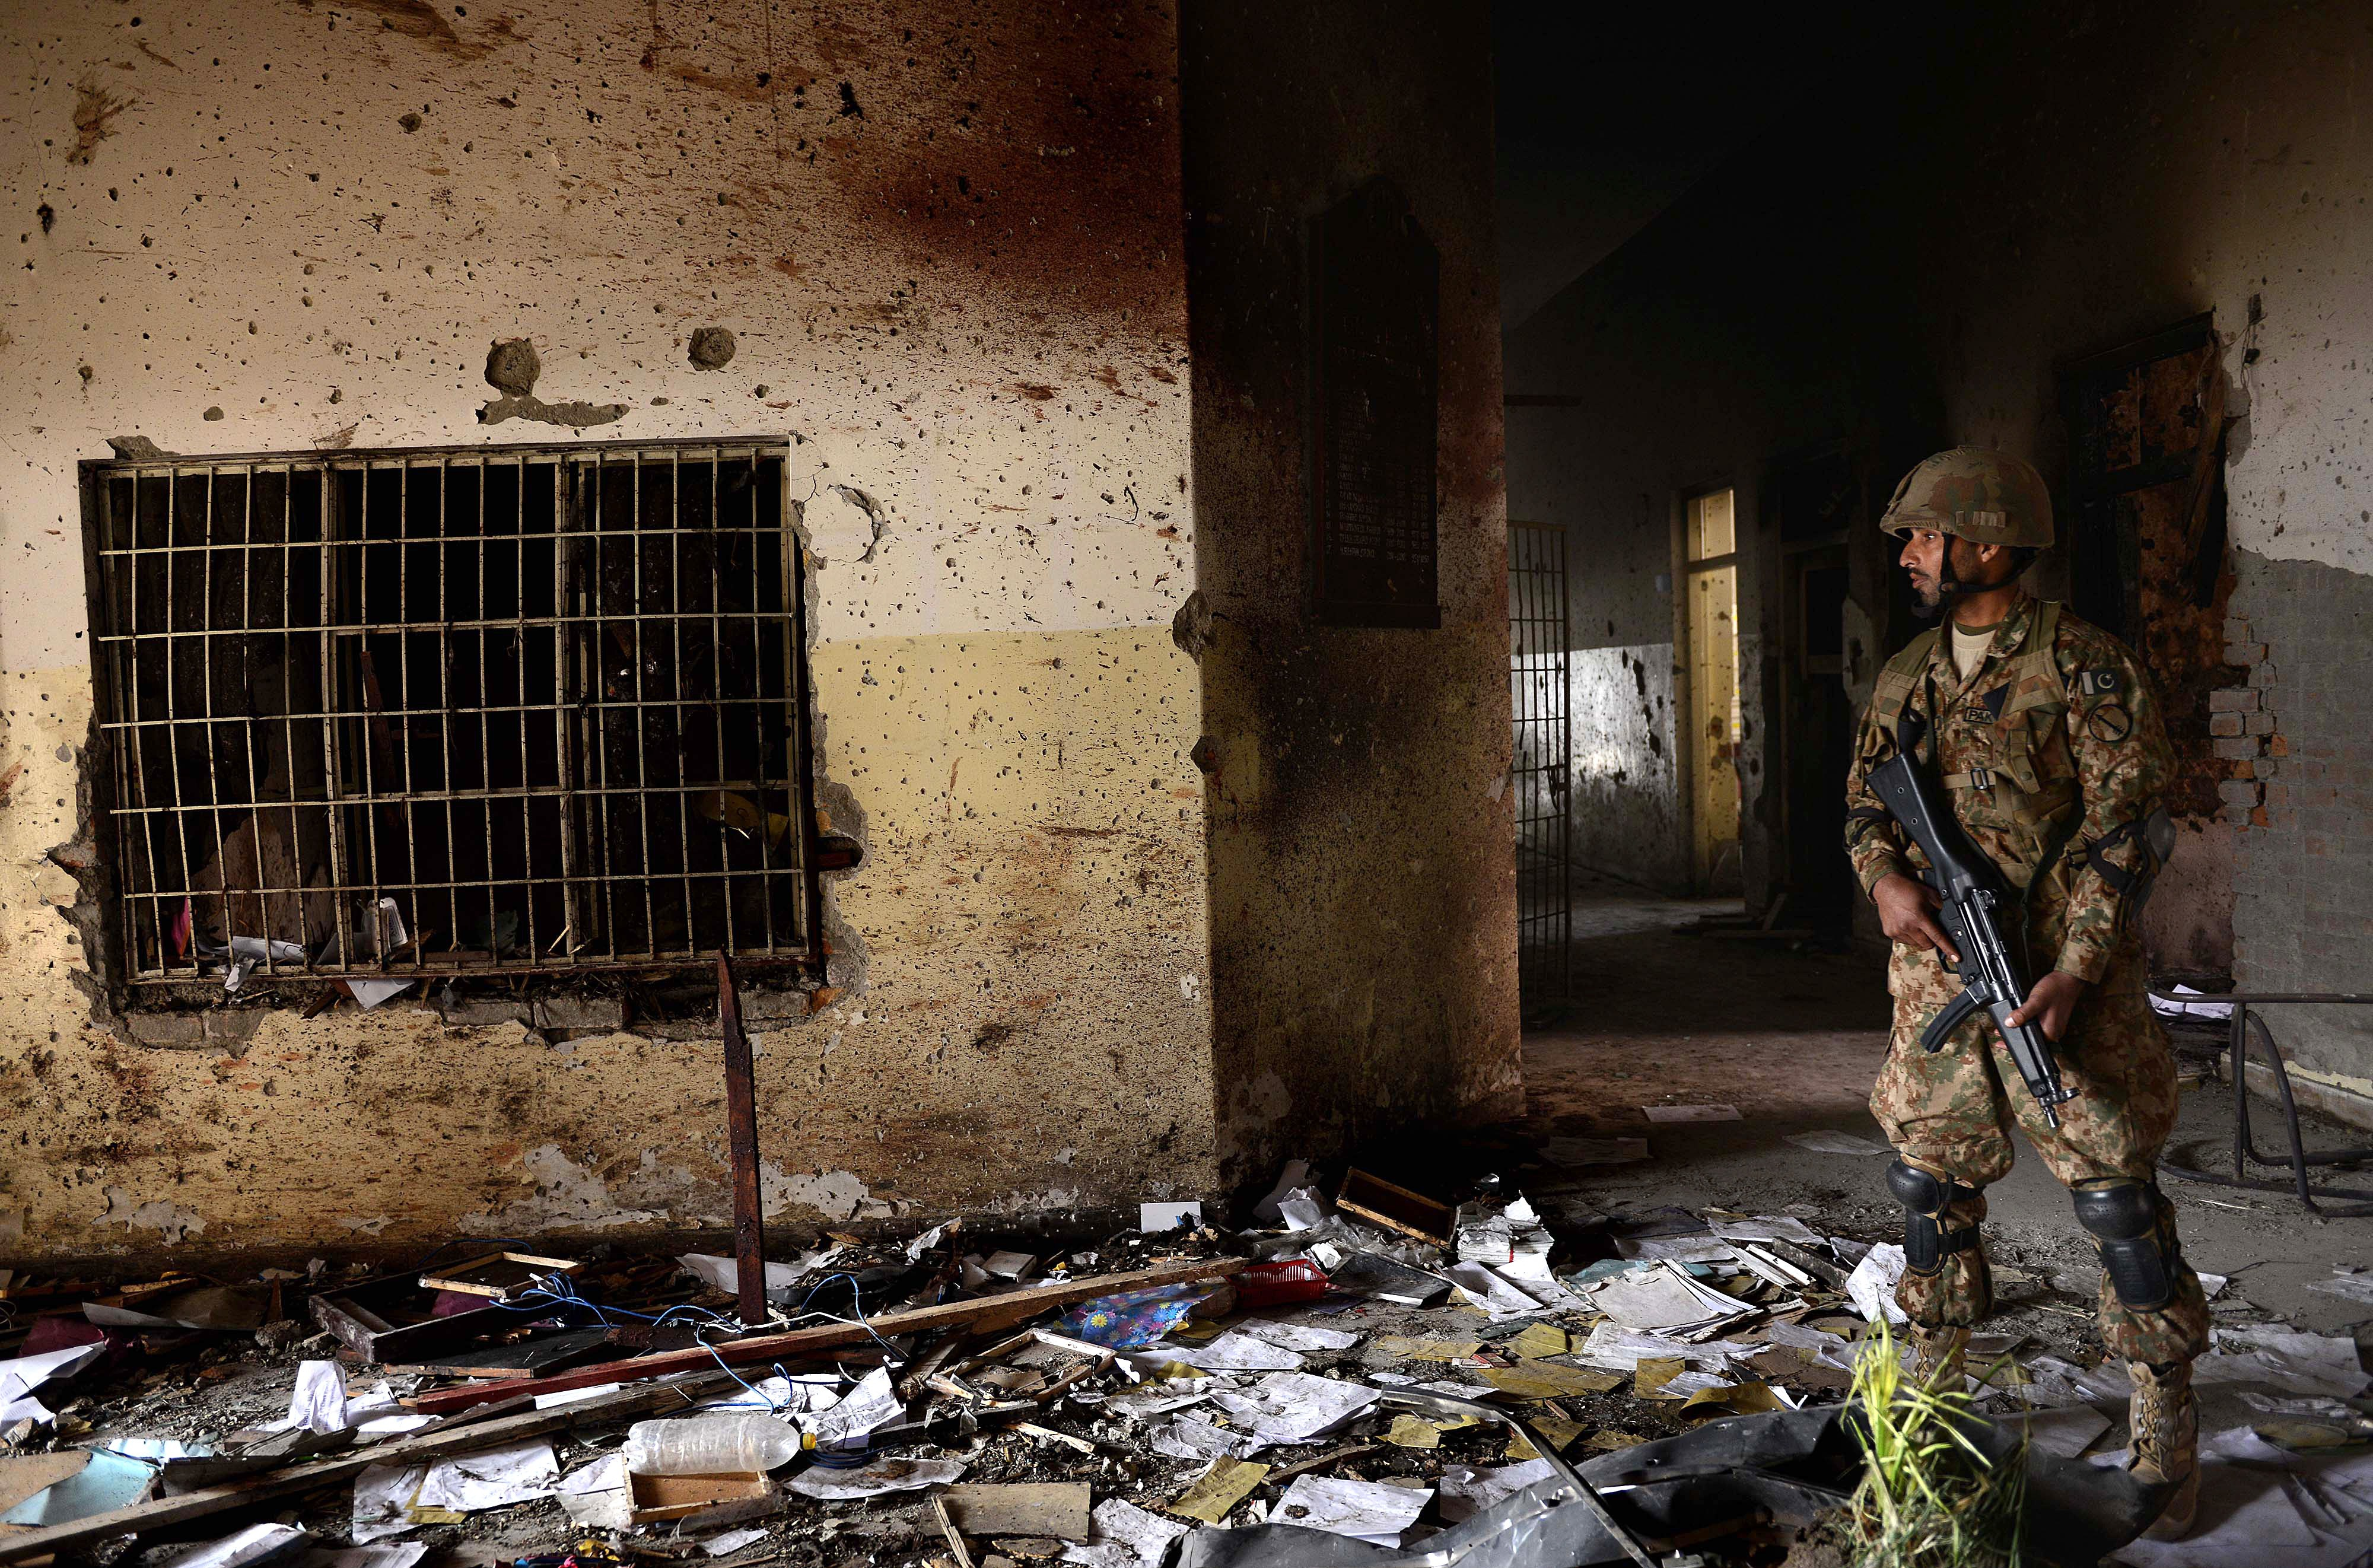 A Pakistani army soldier stands guard at the site of the militants' attack on the army-run school in Peshawar on December 18, 2014.